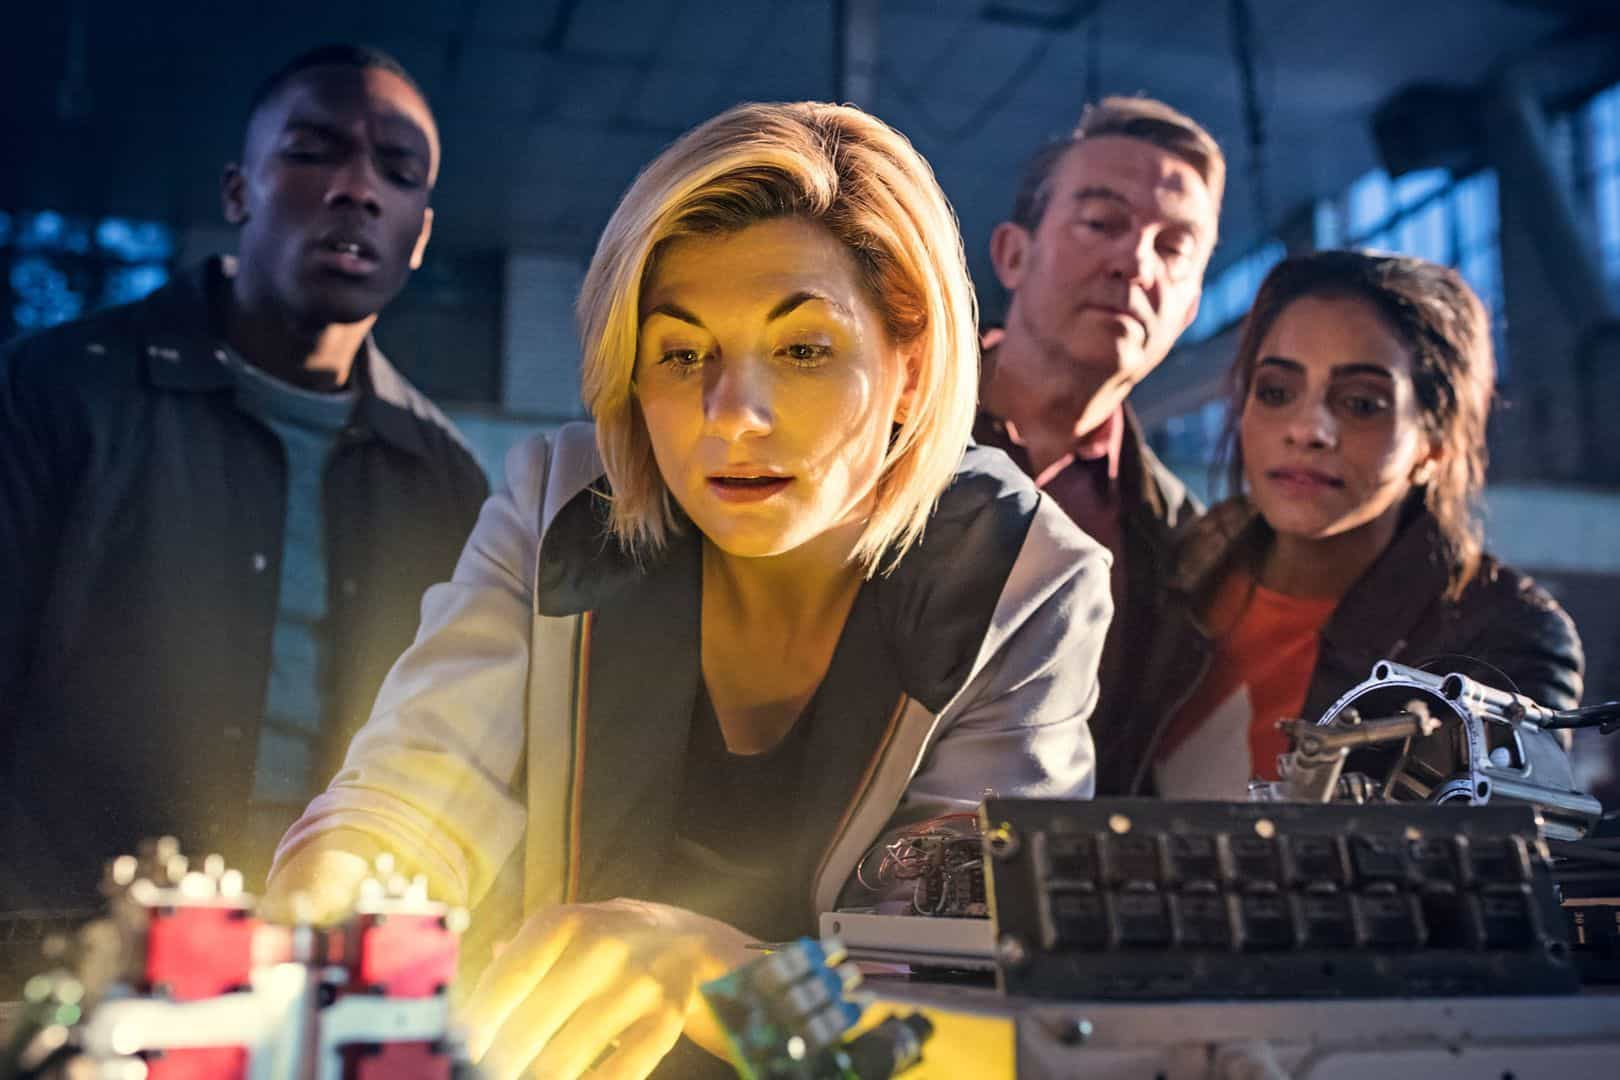 Por engano, Amazon disponibiliza ep. de 'Doctor Who' antes de estreia